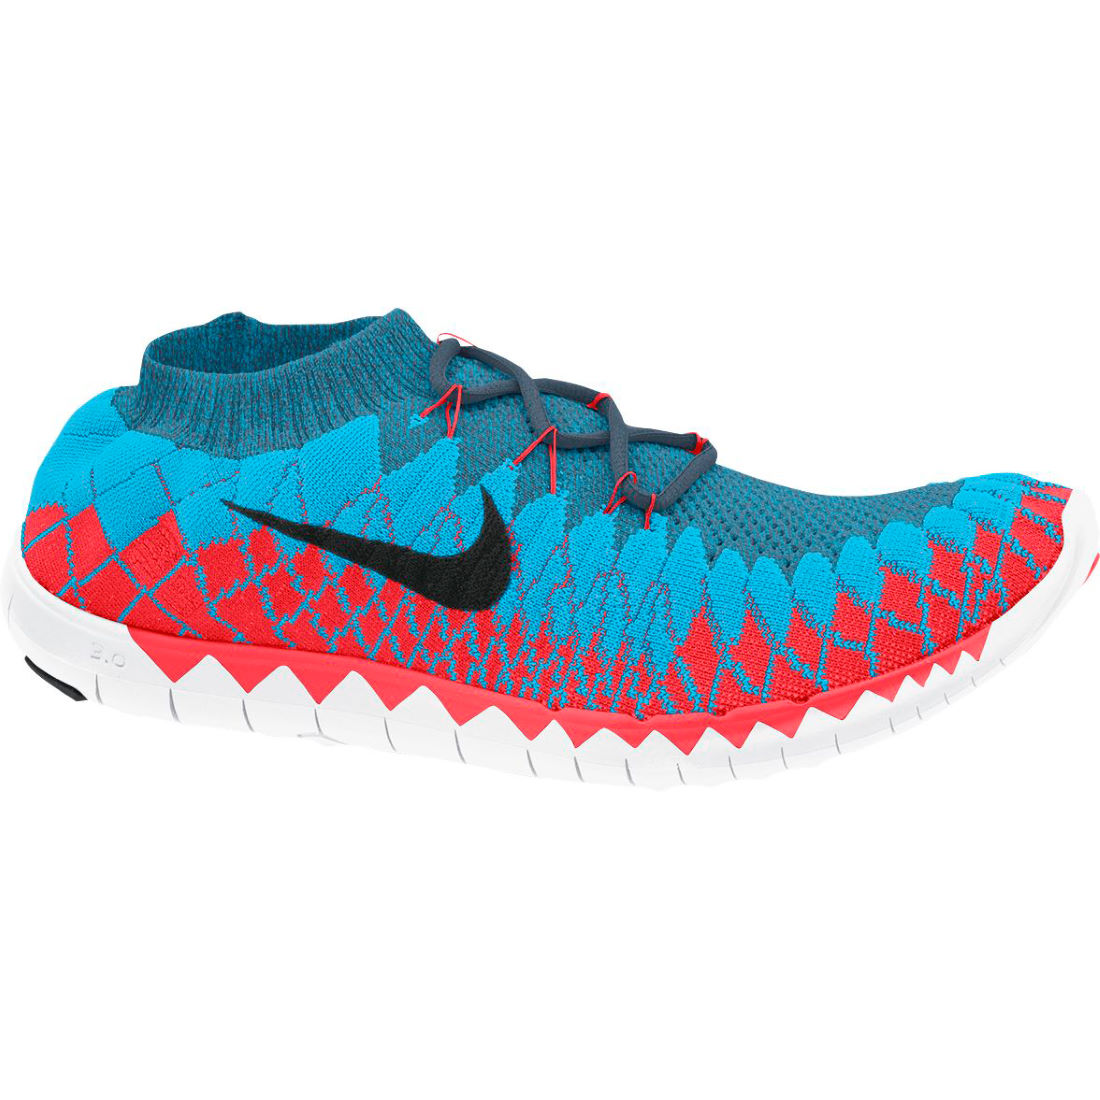 Womens Unique Taste Replica Light Red White Running Shoes Nike Free 3 0 V6 Sport Shoes Uk